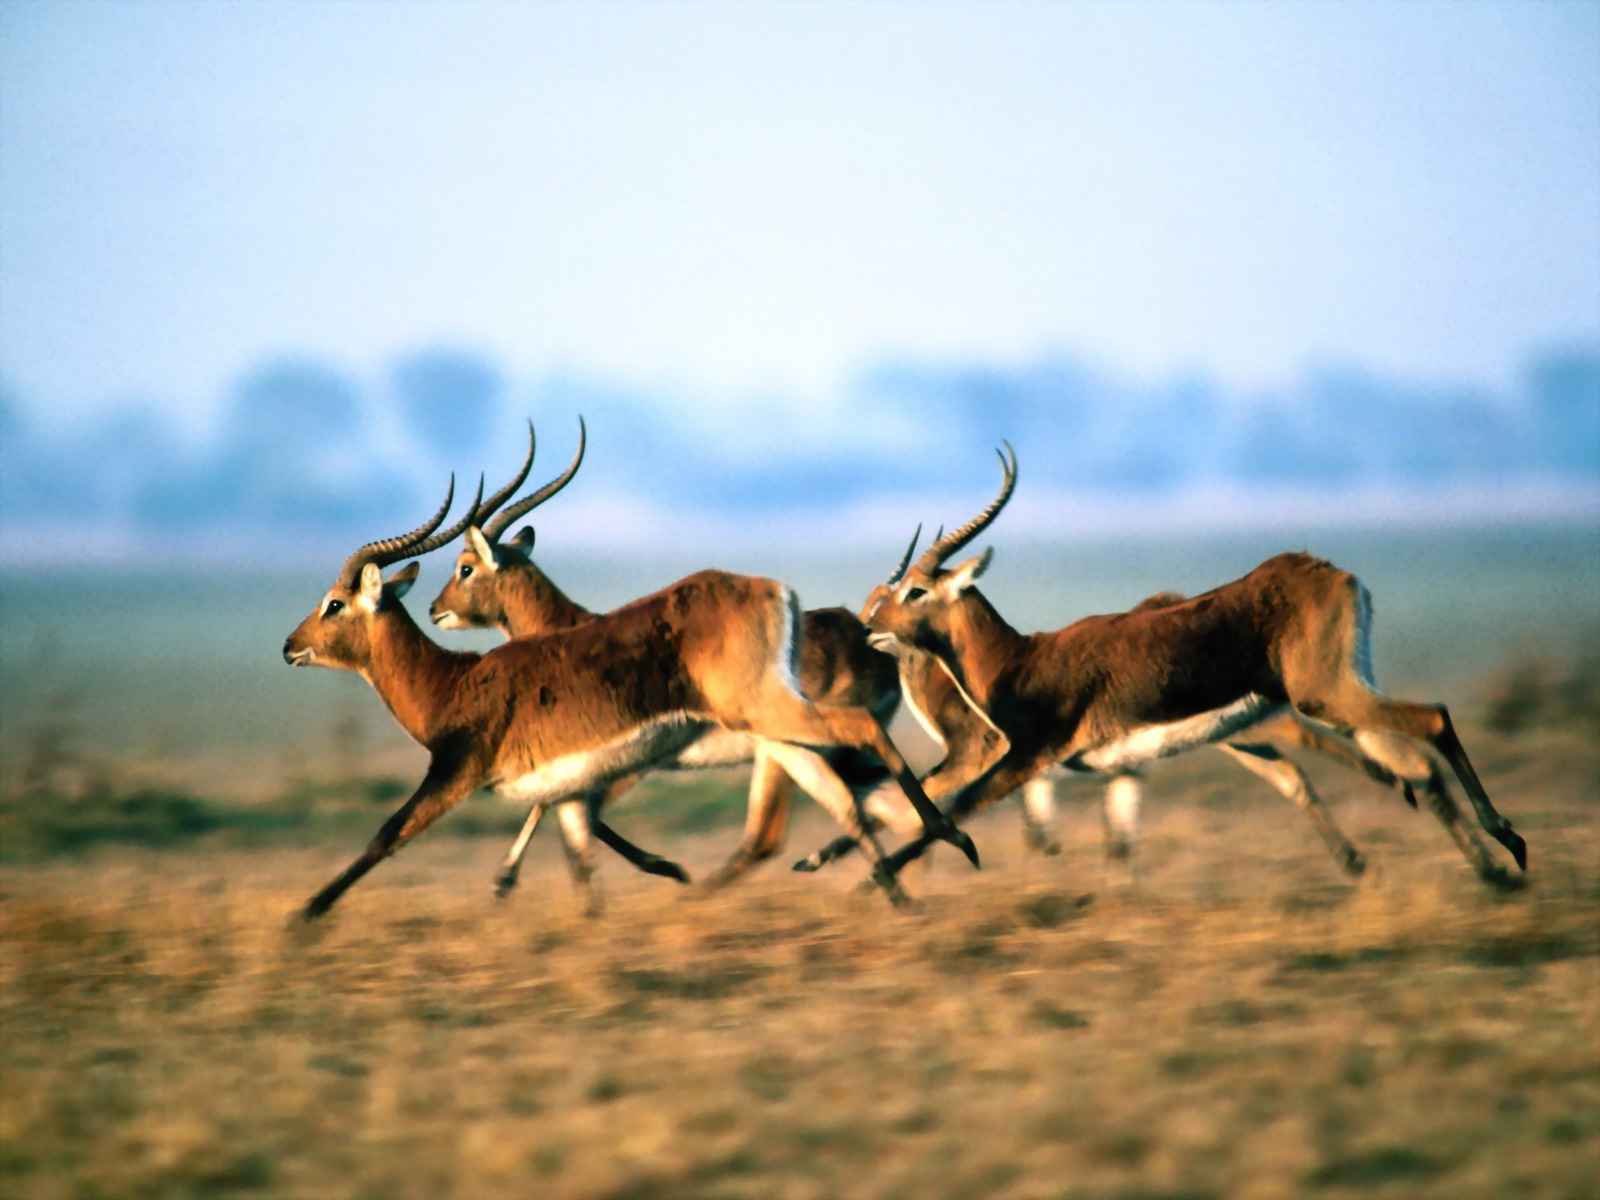 Antelope | The Biggest Animals Kingdom